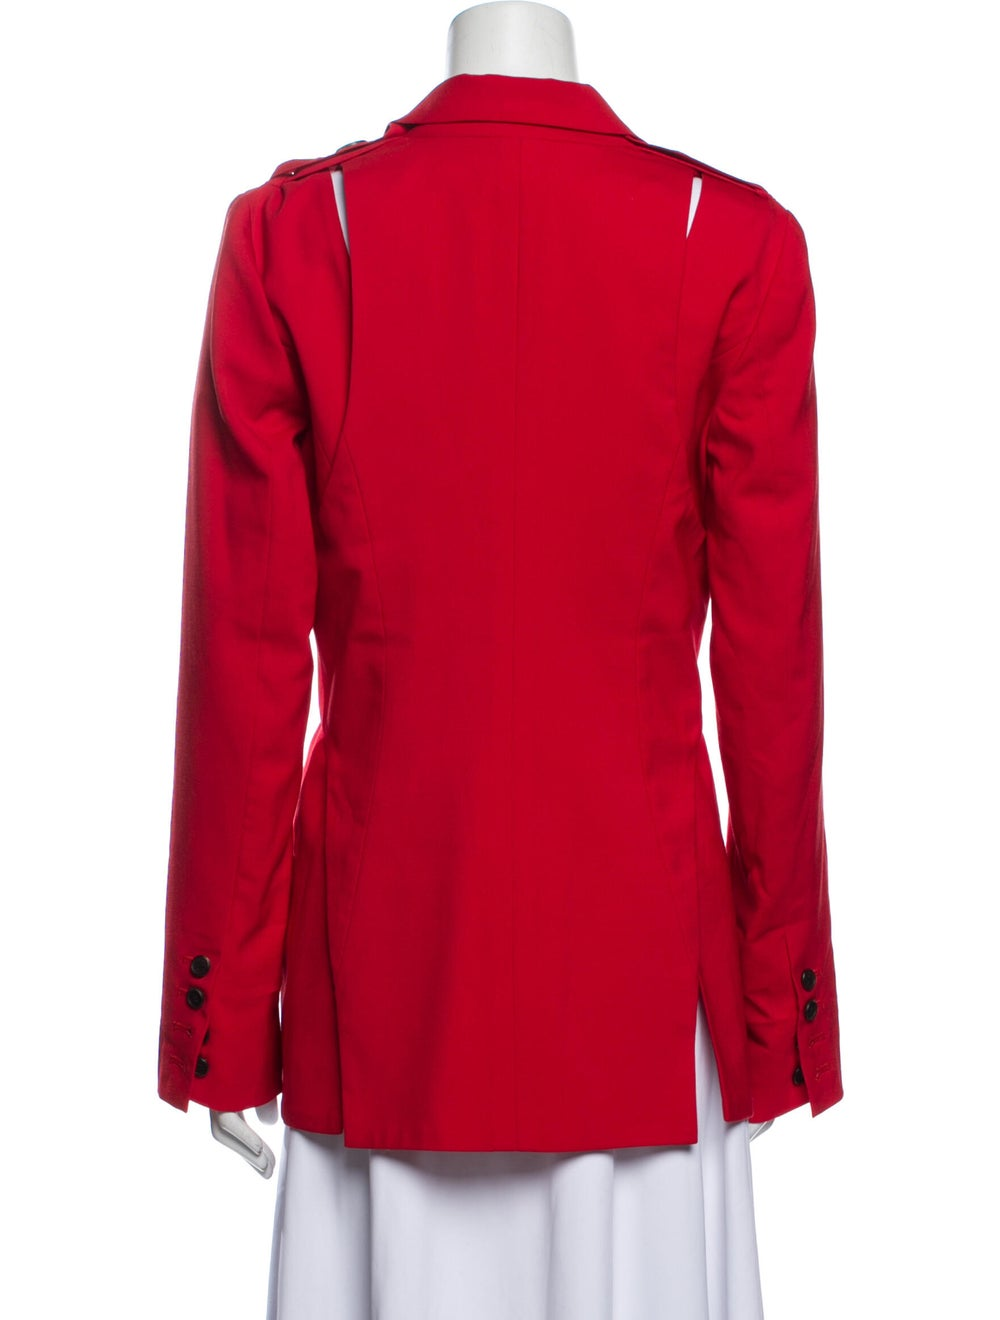 Beaufille Blazer Red - image 3